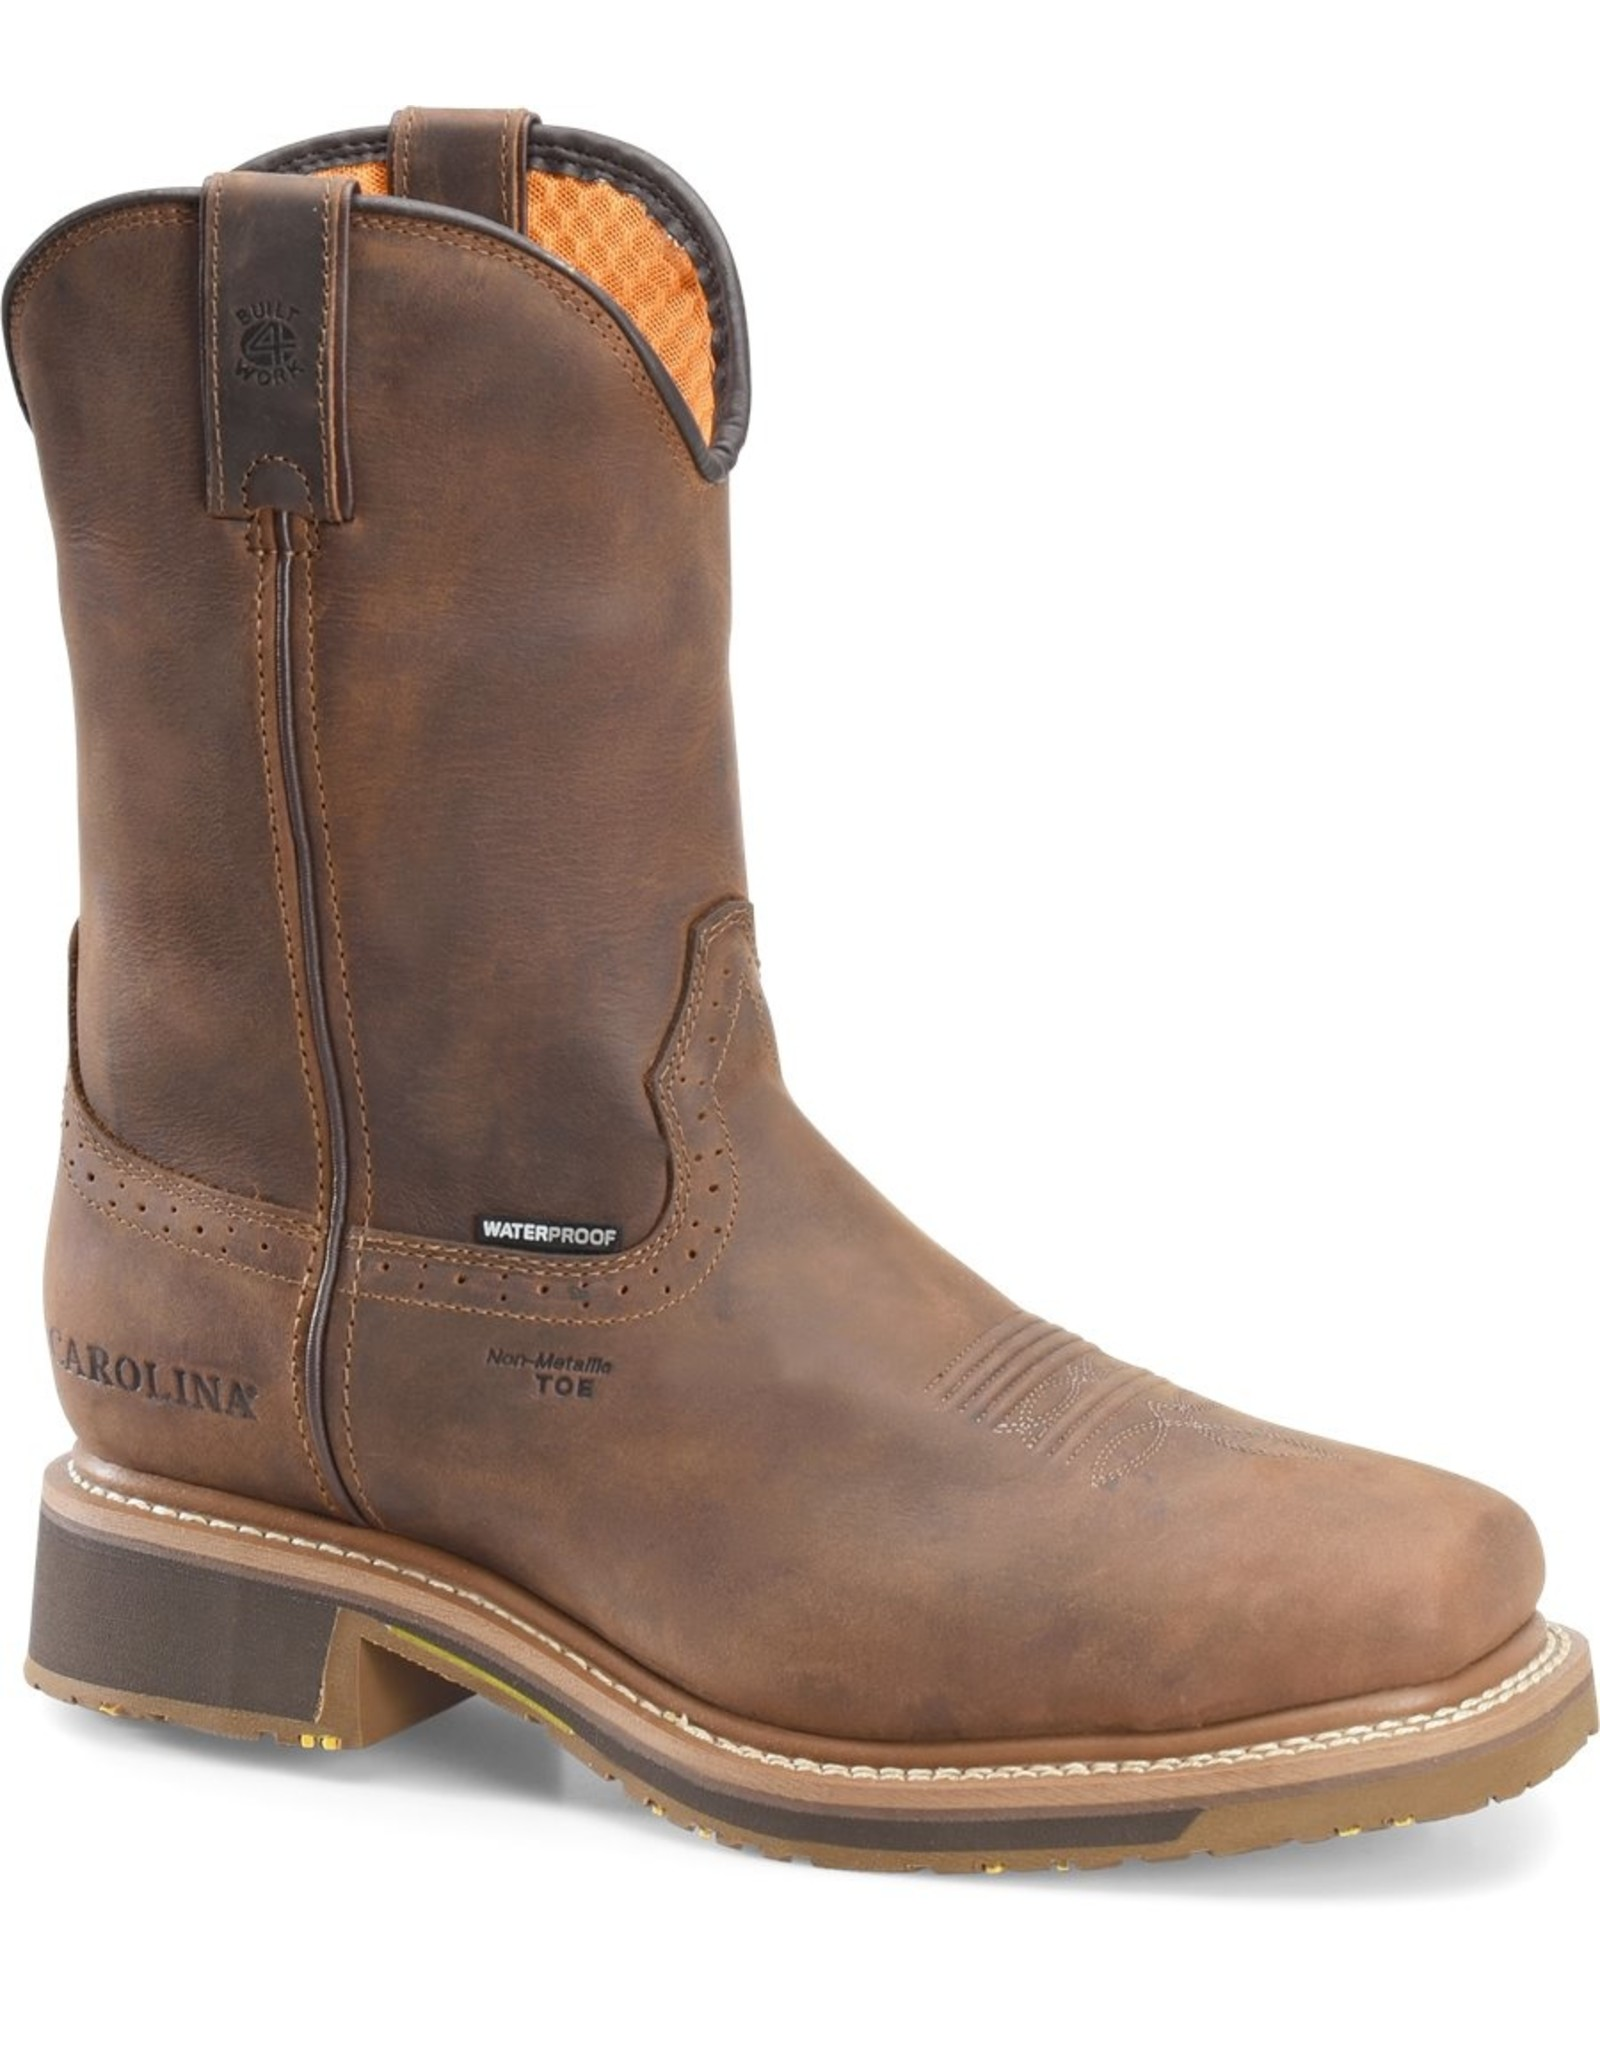 Boots-Men CAROLINA Anchor CA8536